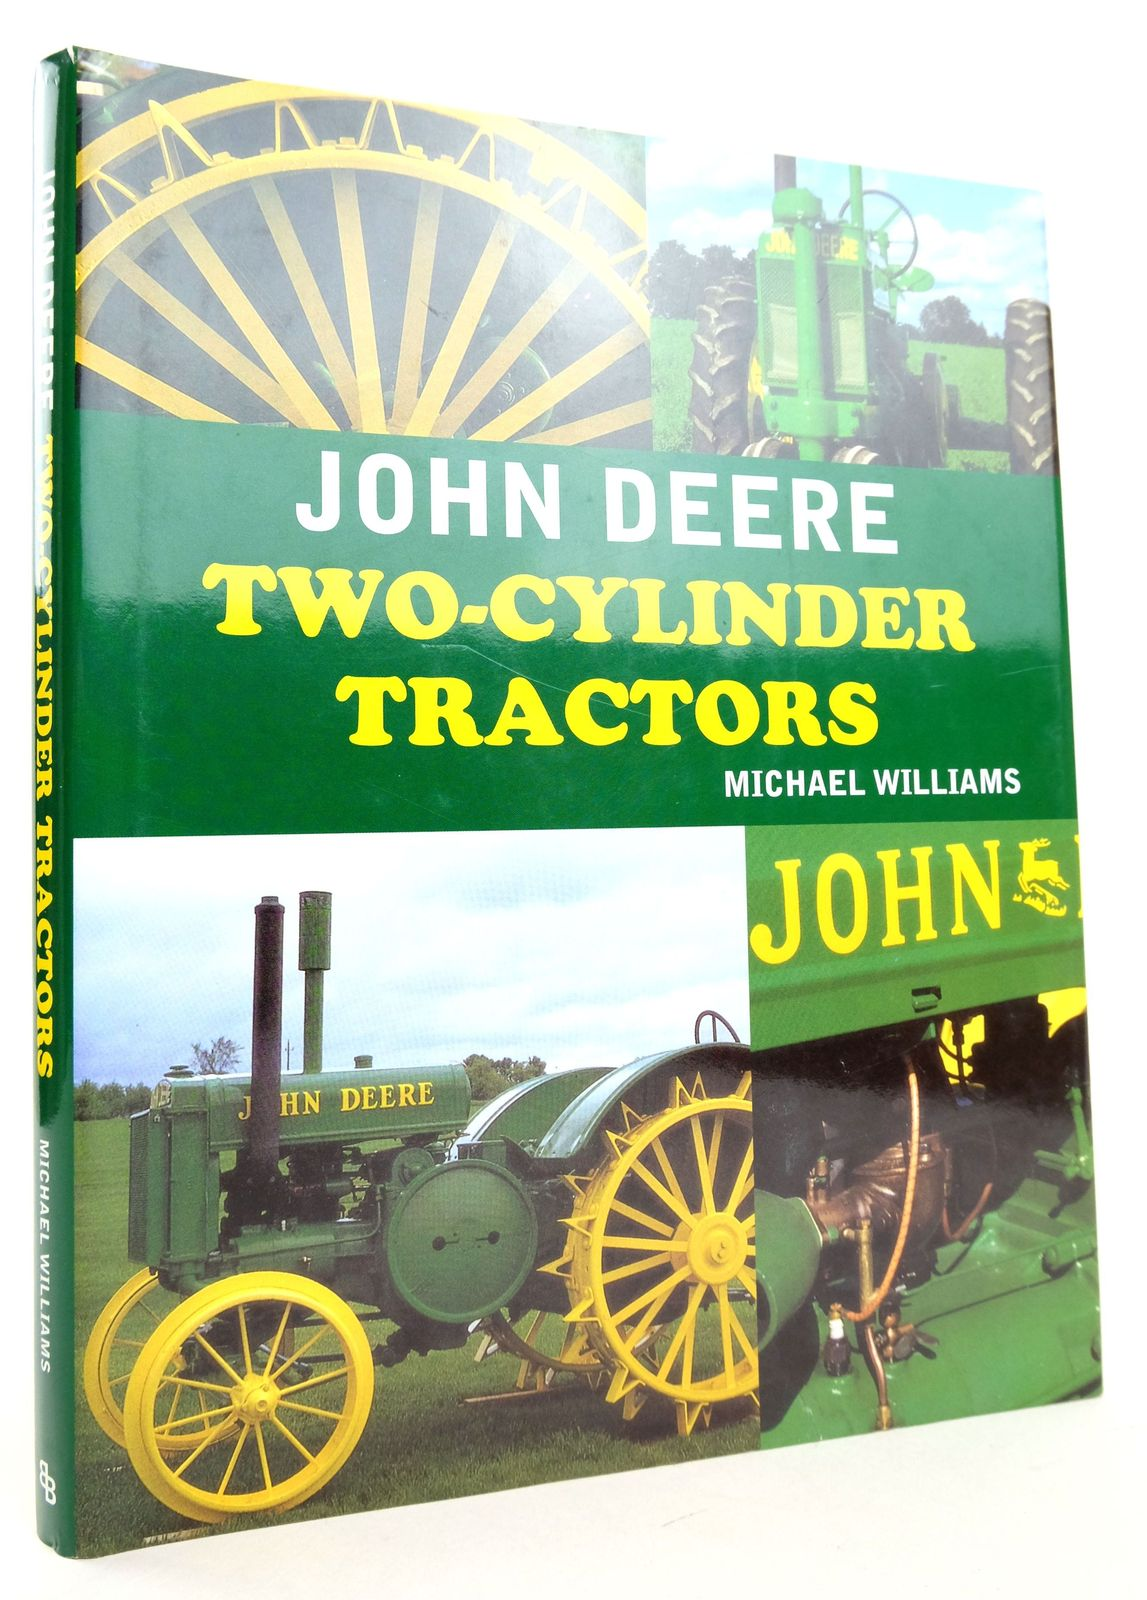 Photo of JOHN DEERE TWO-CYLINDER TRACTORS written by Williams, Michael published by Bounty Books (STOCK CODE: 1819346)  for sale by Stella & Rose's Books